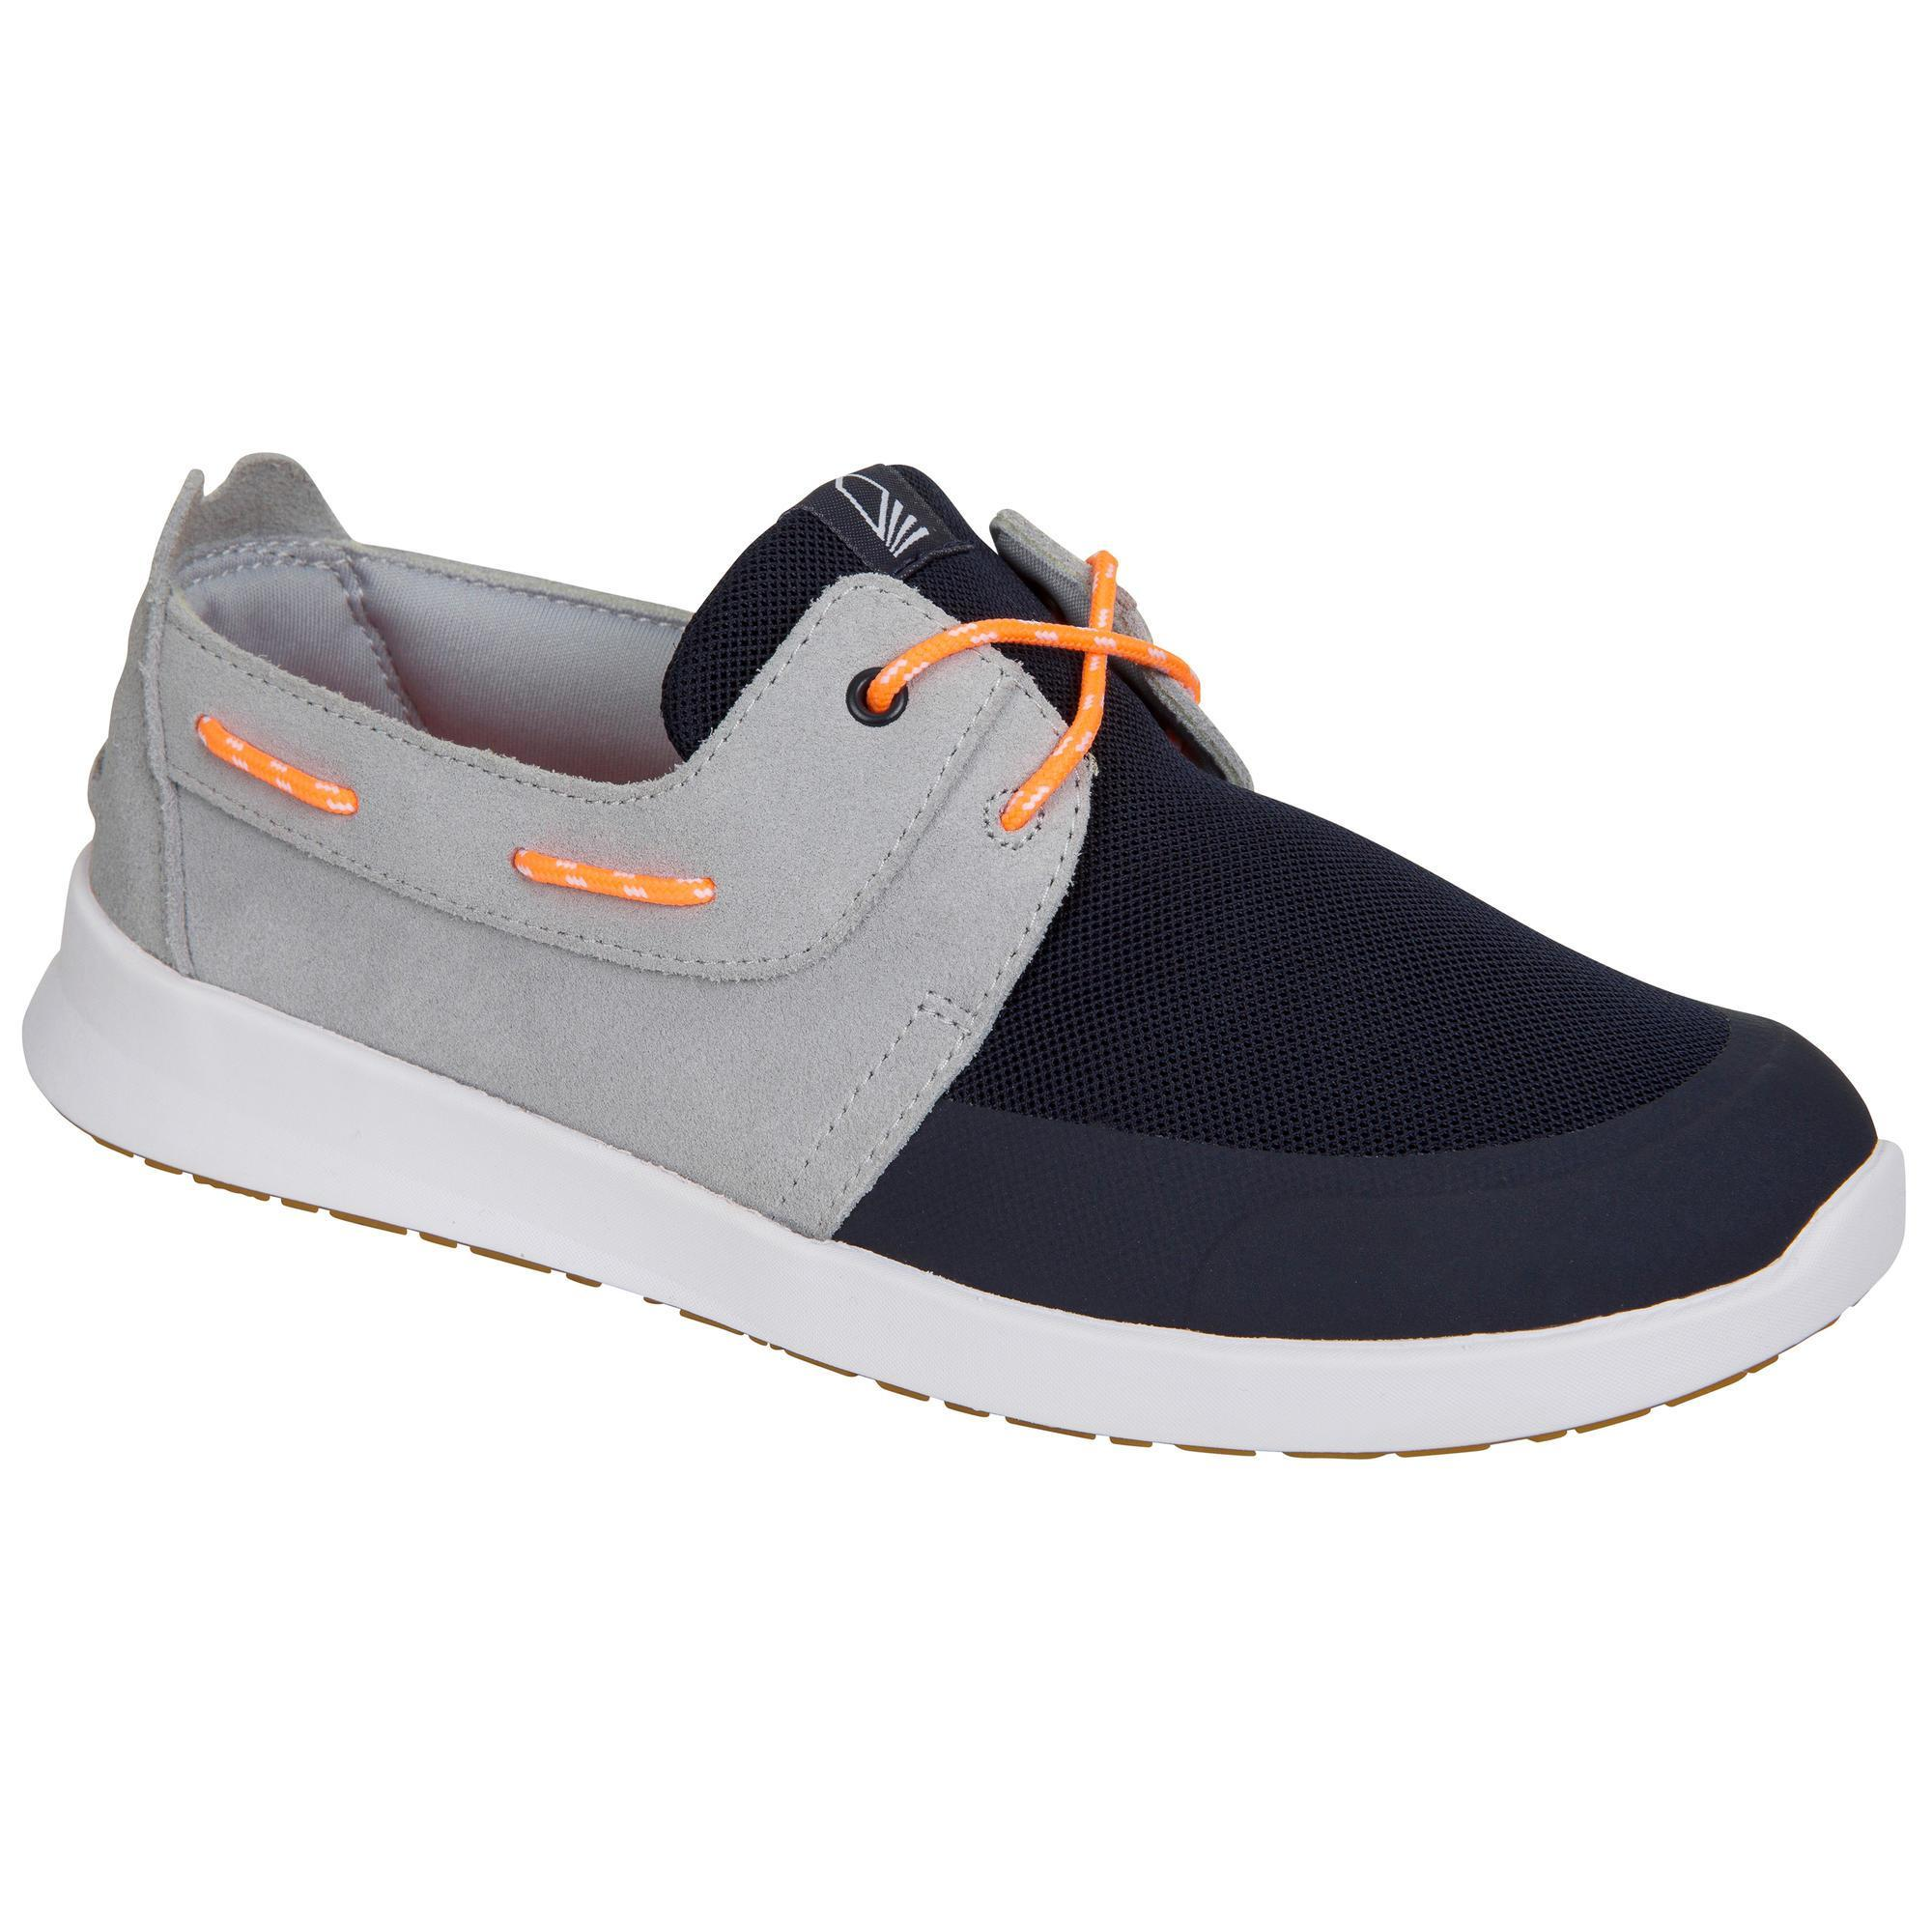 Chaussures bateau femme Cruise 100 vert Blue grey - Tribord